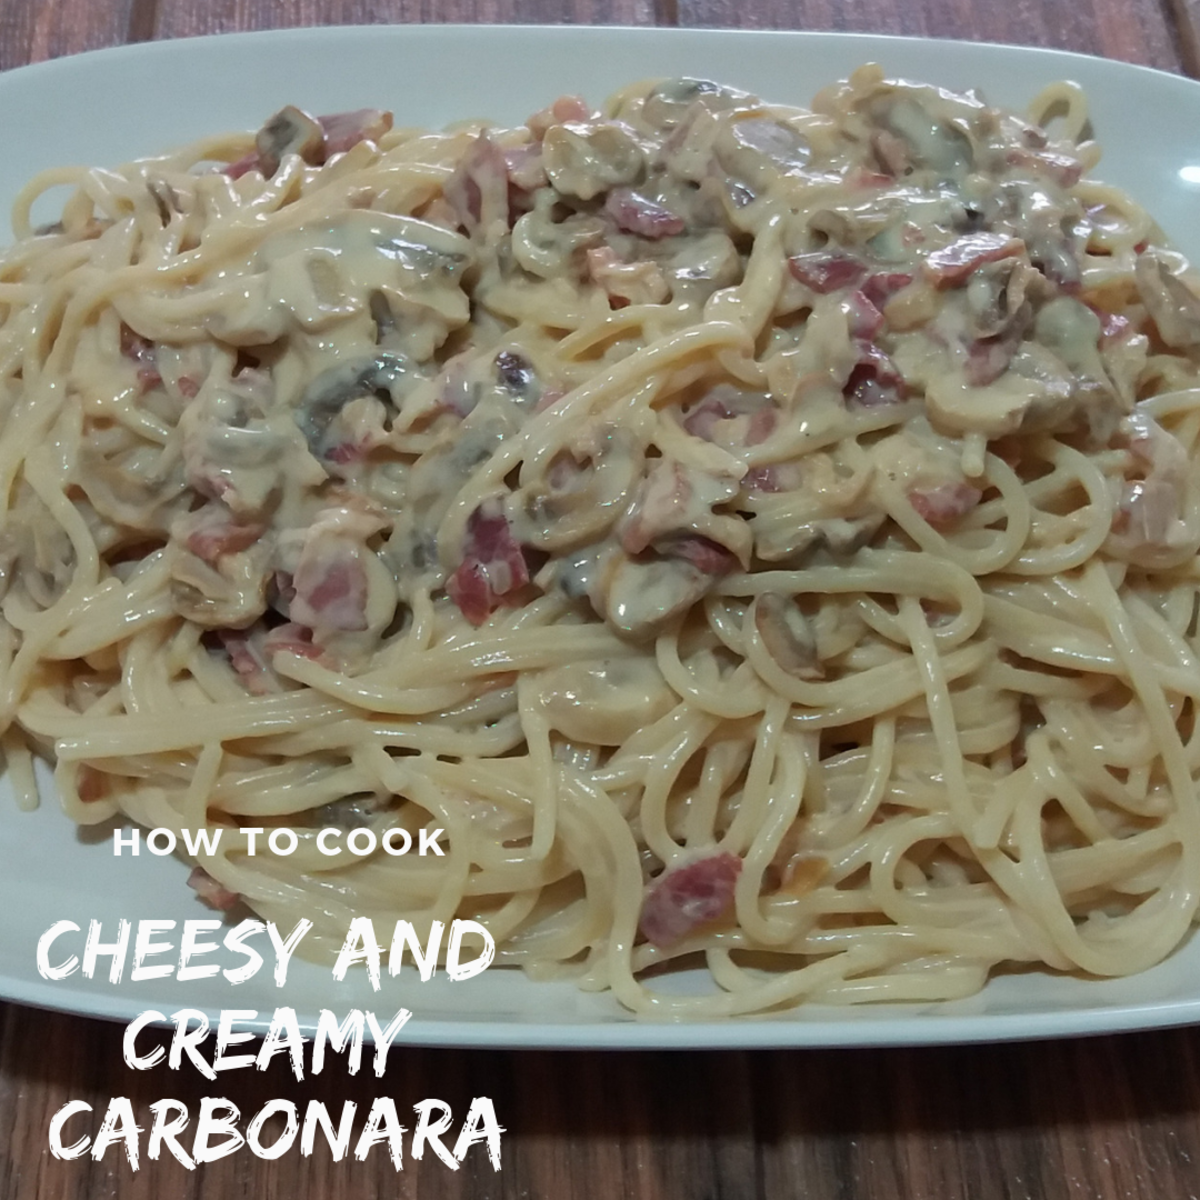 How to Cook Cheesy and Creamy Carbonara